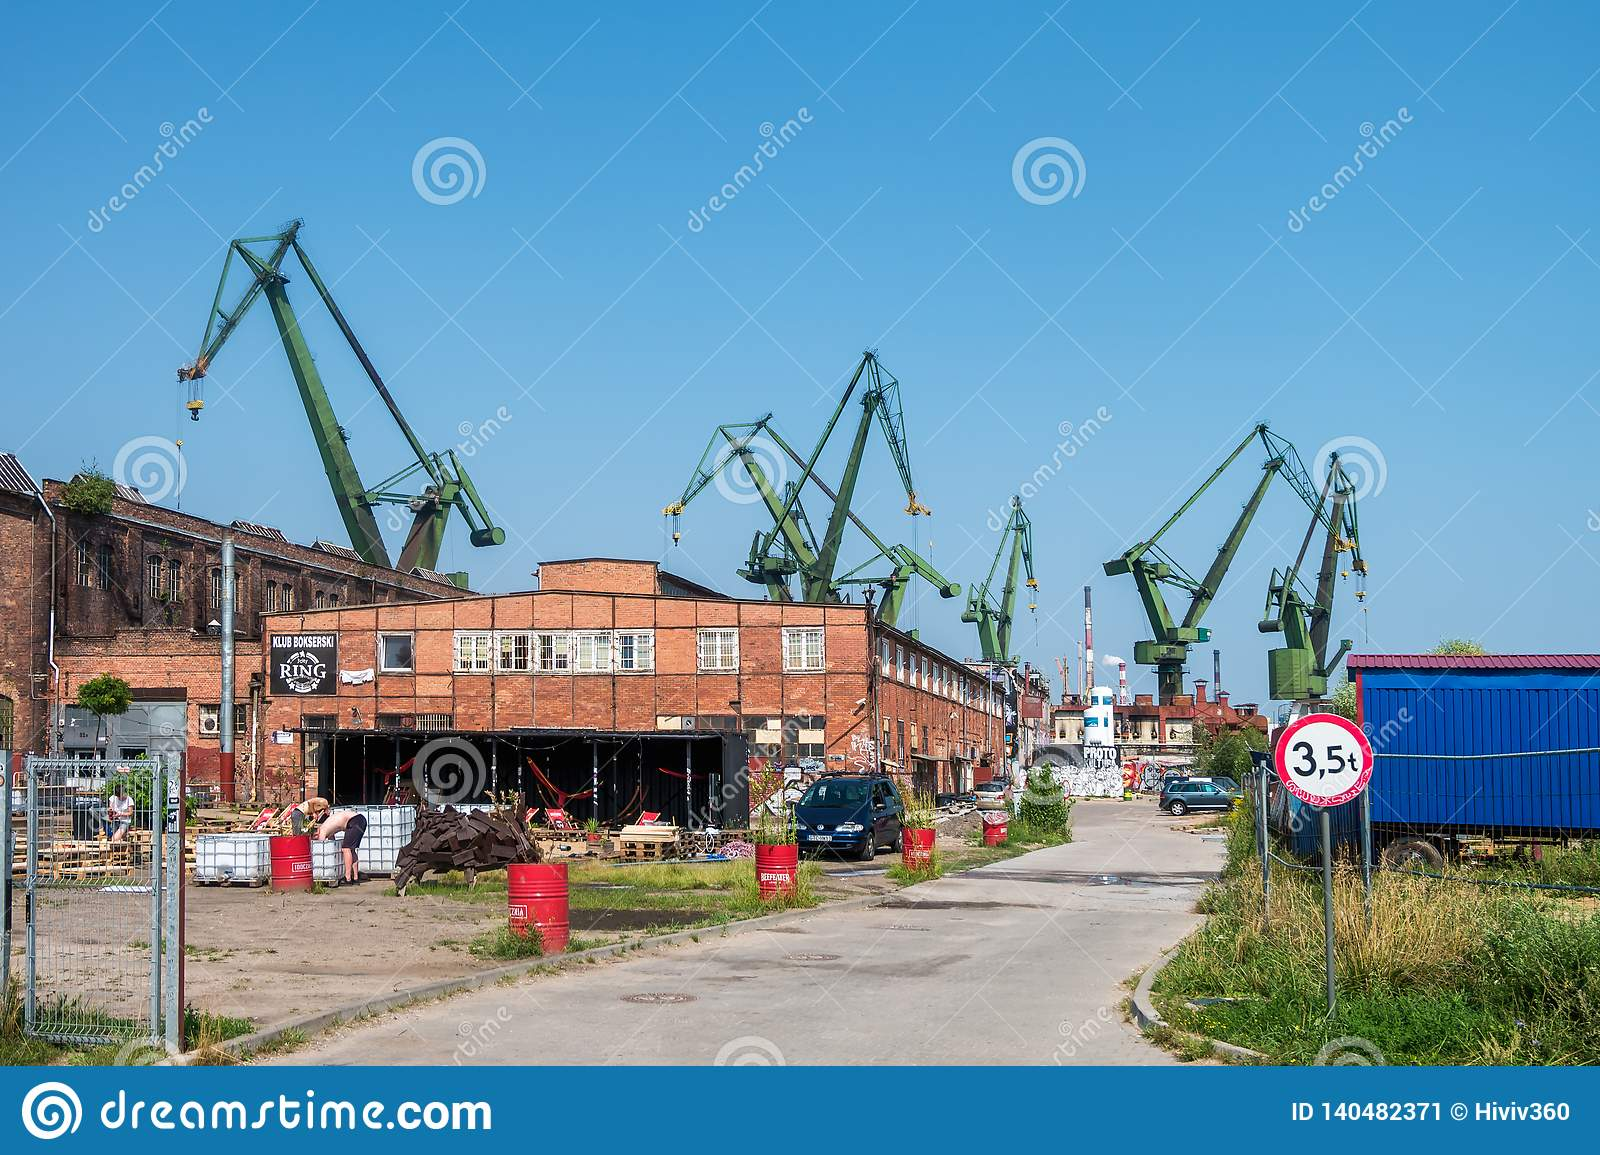 GDANSK, POLAND - AUGUST, 2018 : Gdansk Shipyard by Vistula river, the birthplace of polish Solidarity/ A view of shipyard and the